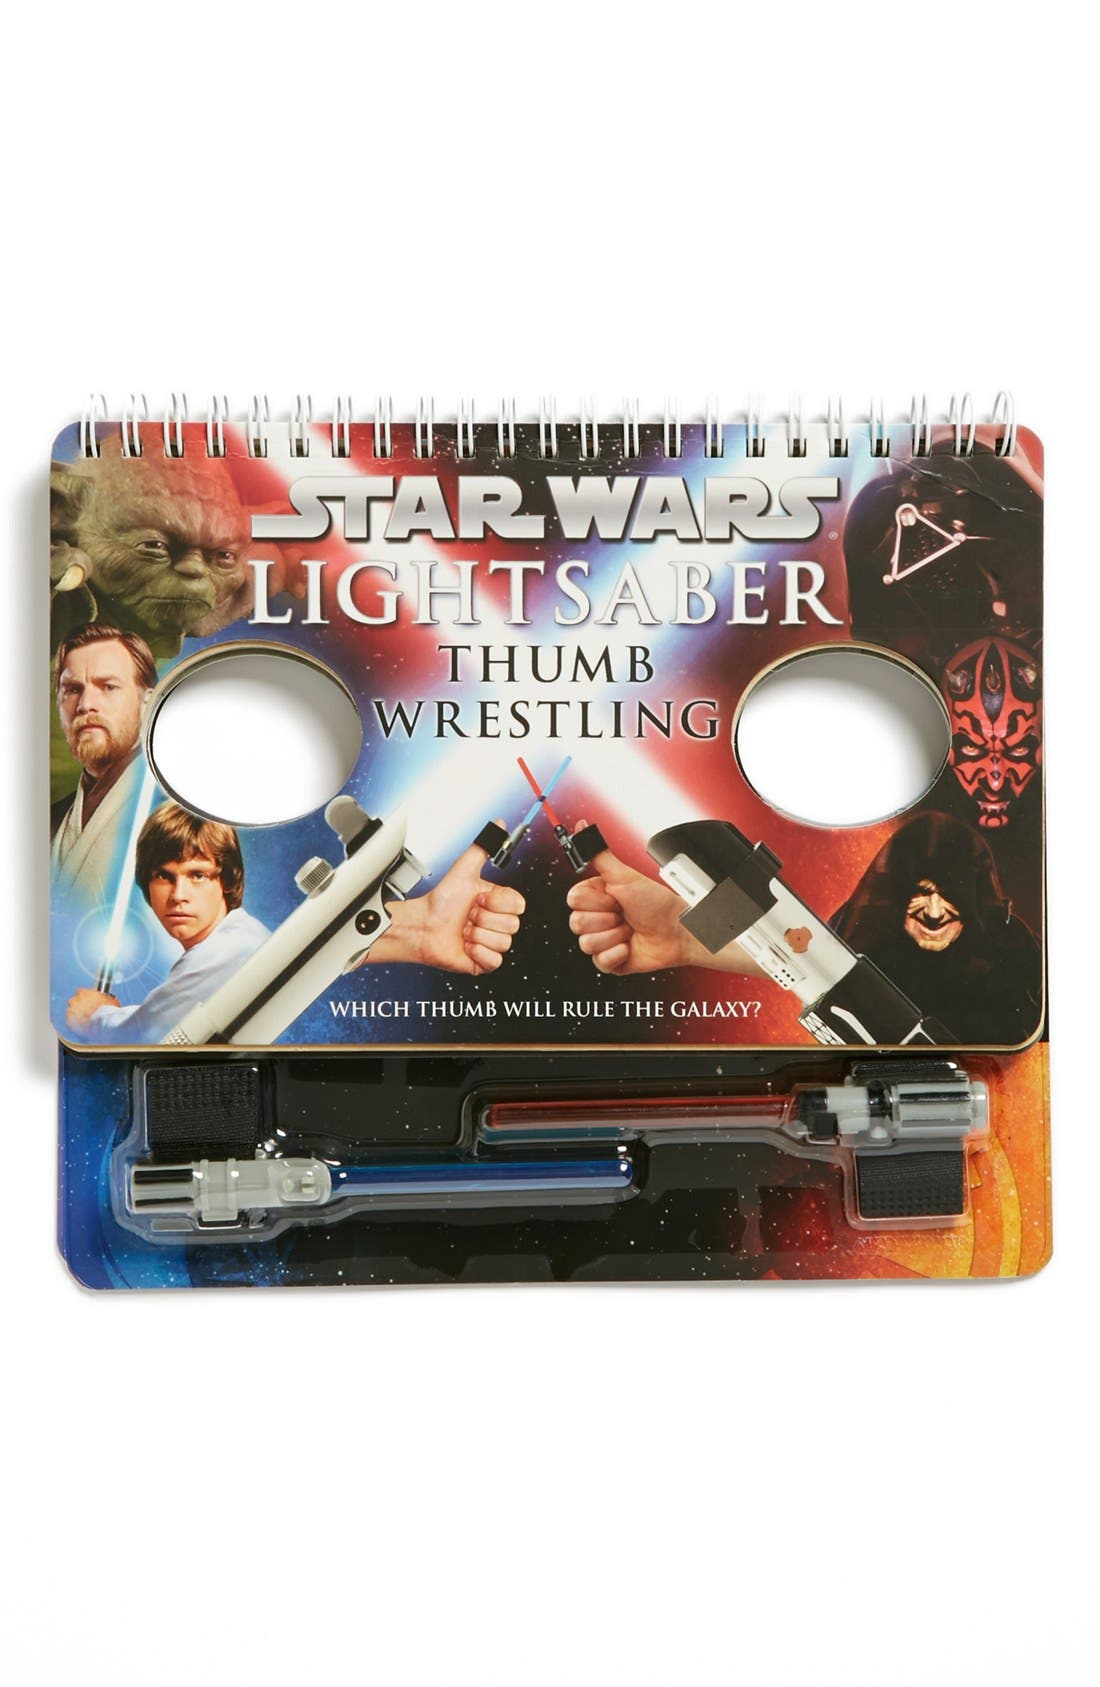 Alternate Image 1 Selected - 'Star Wars™ Lightsaber Thumb Wrestling' Book